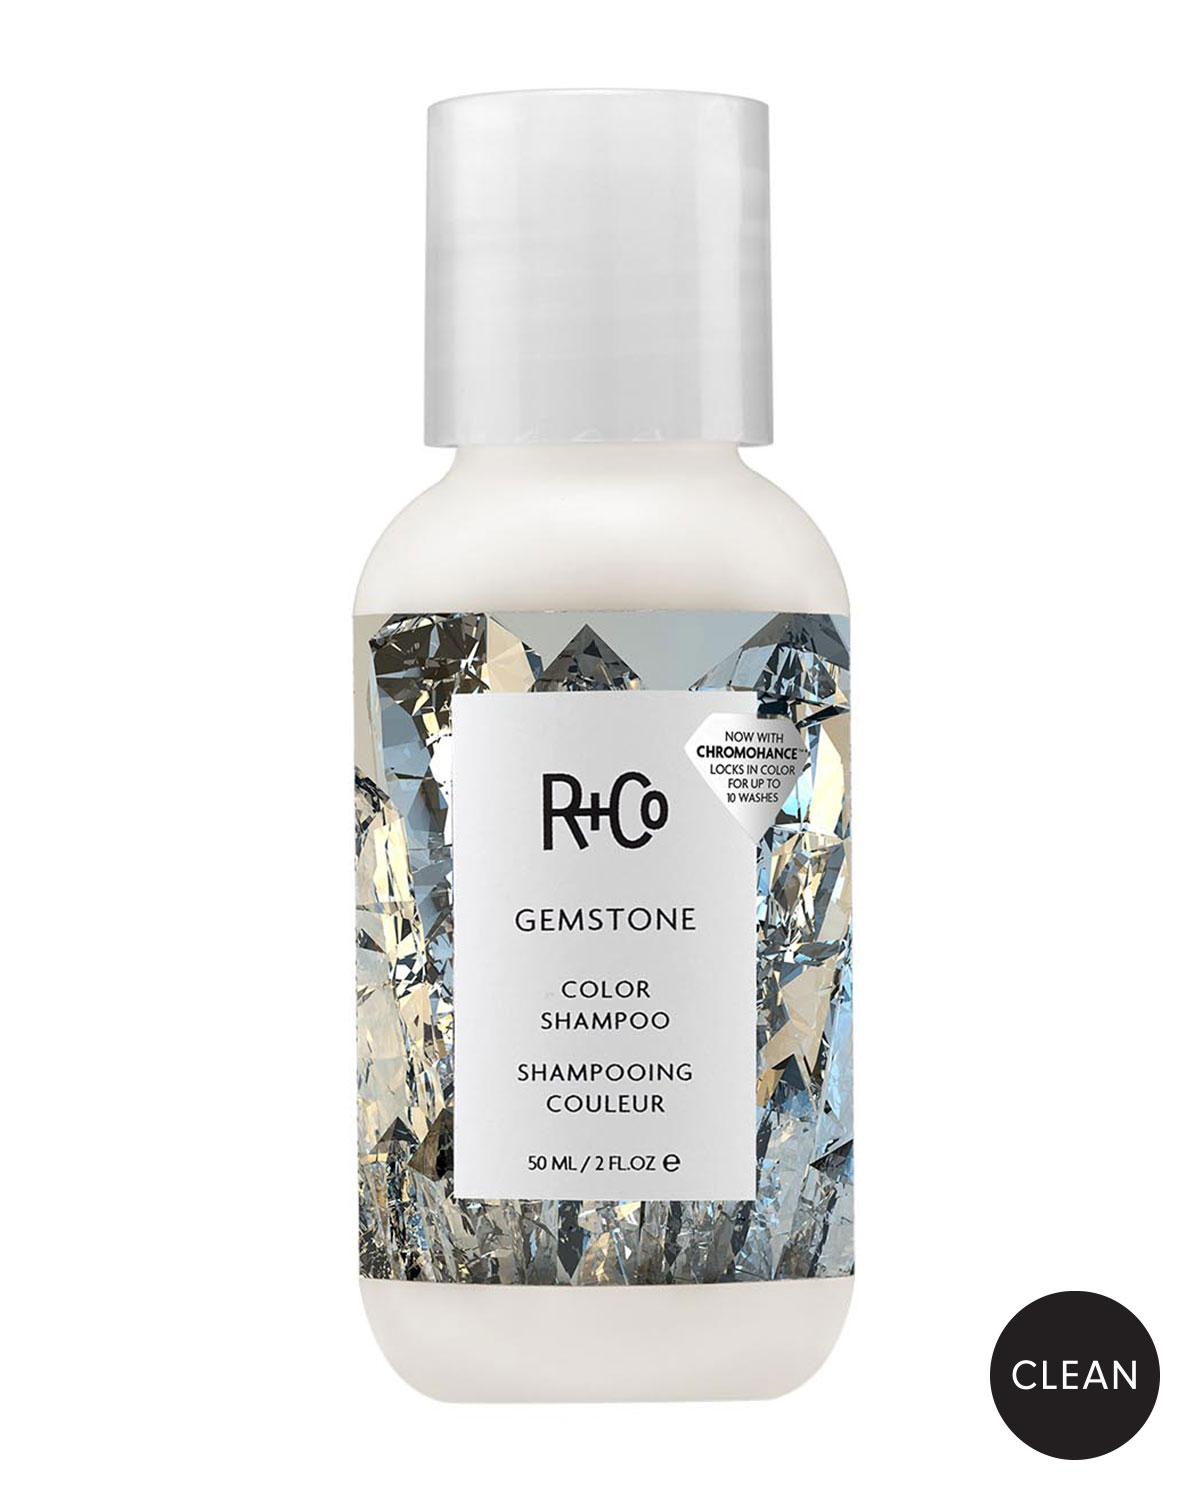 R+Co Gemstone Color Shampoo, Travel Size